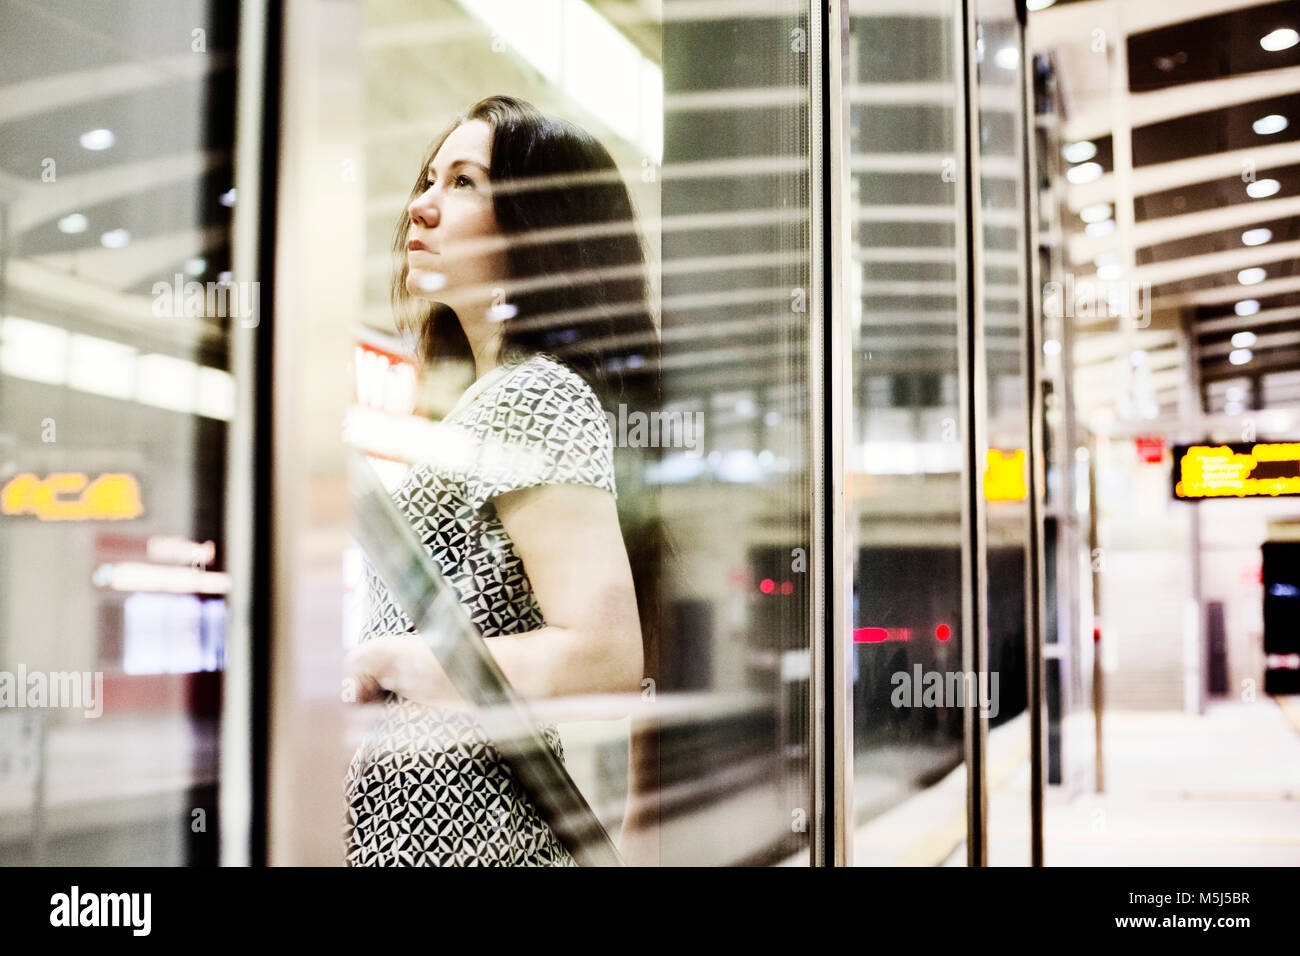 Portrait of young woman waiting behind glass wall on underground station platform - Stock Image